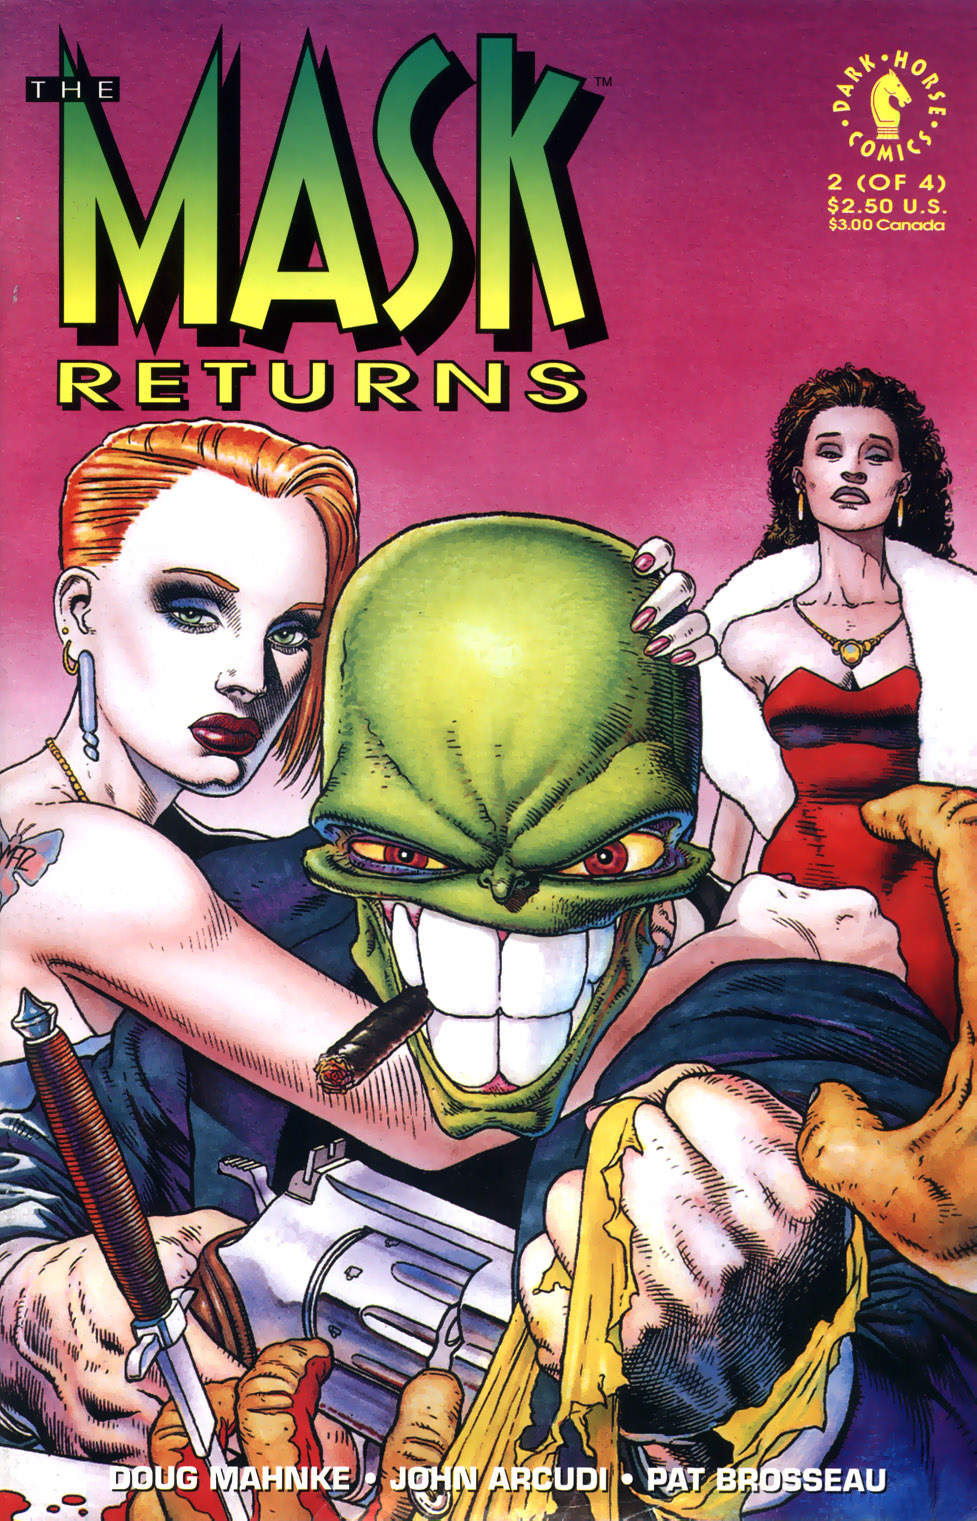 The Mask Returns Issue 2